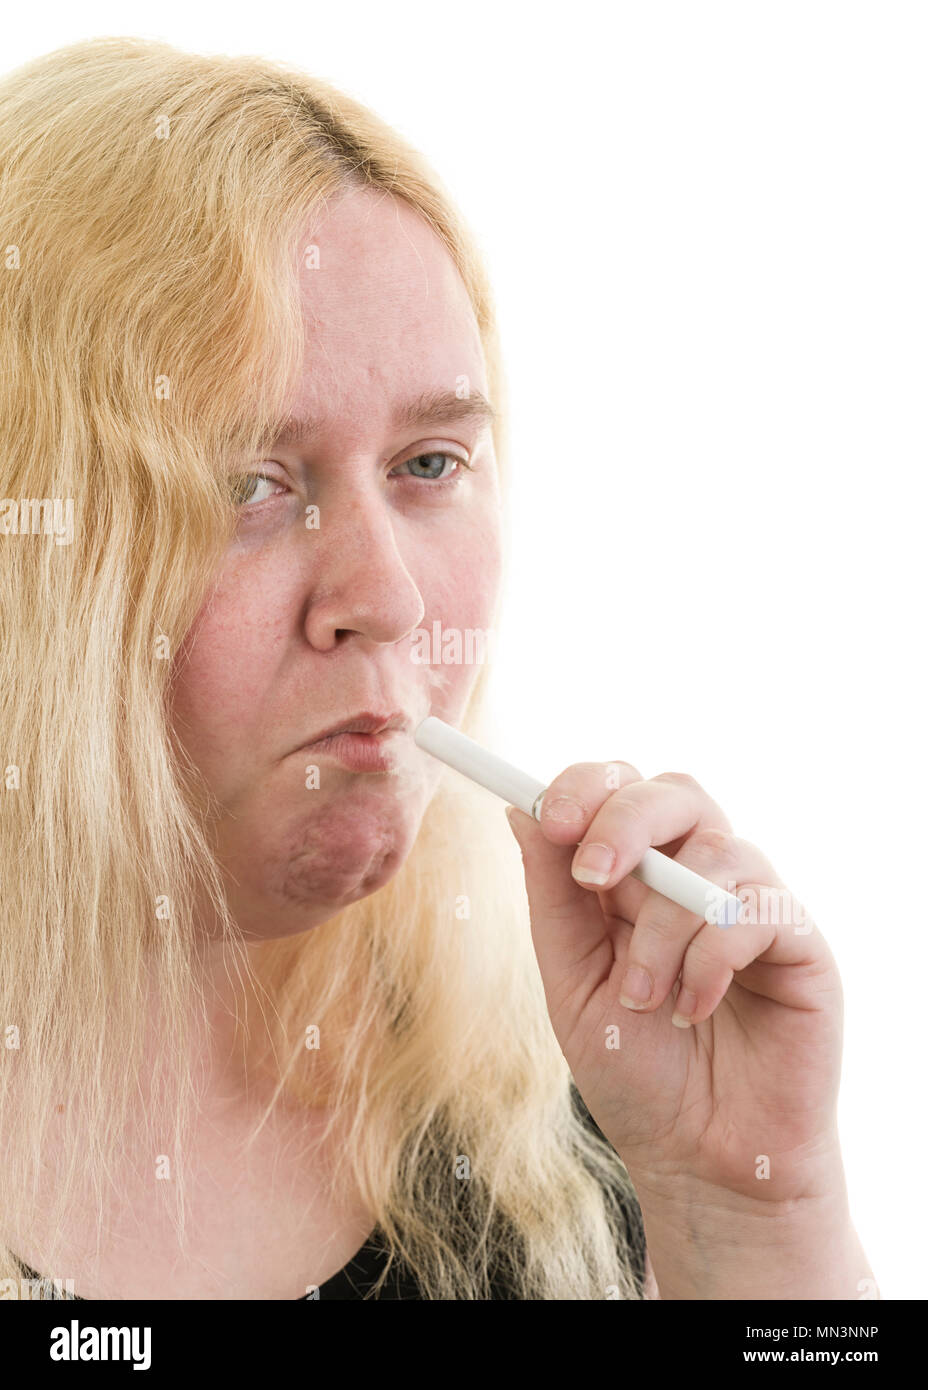 Young caucasian blonde female woman using smoking an electronic cigarette isolated on white background  Model Release: Yes. Property Release: No. - Stock Image